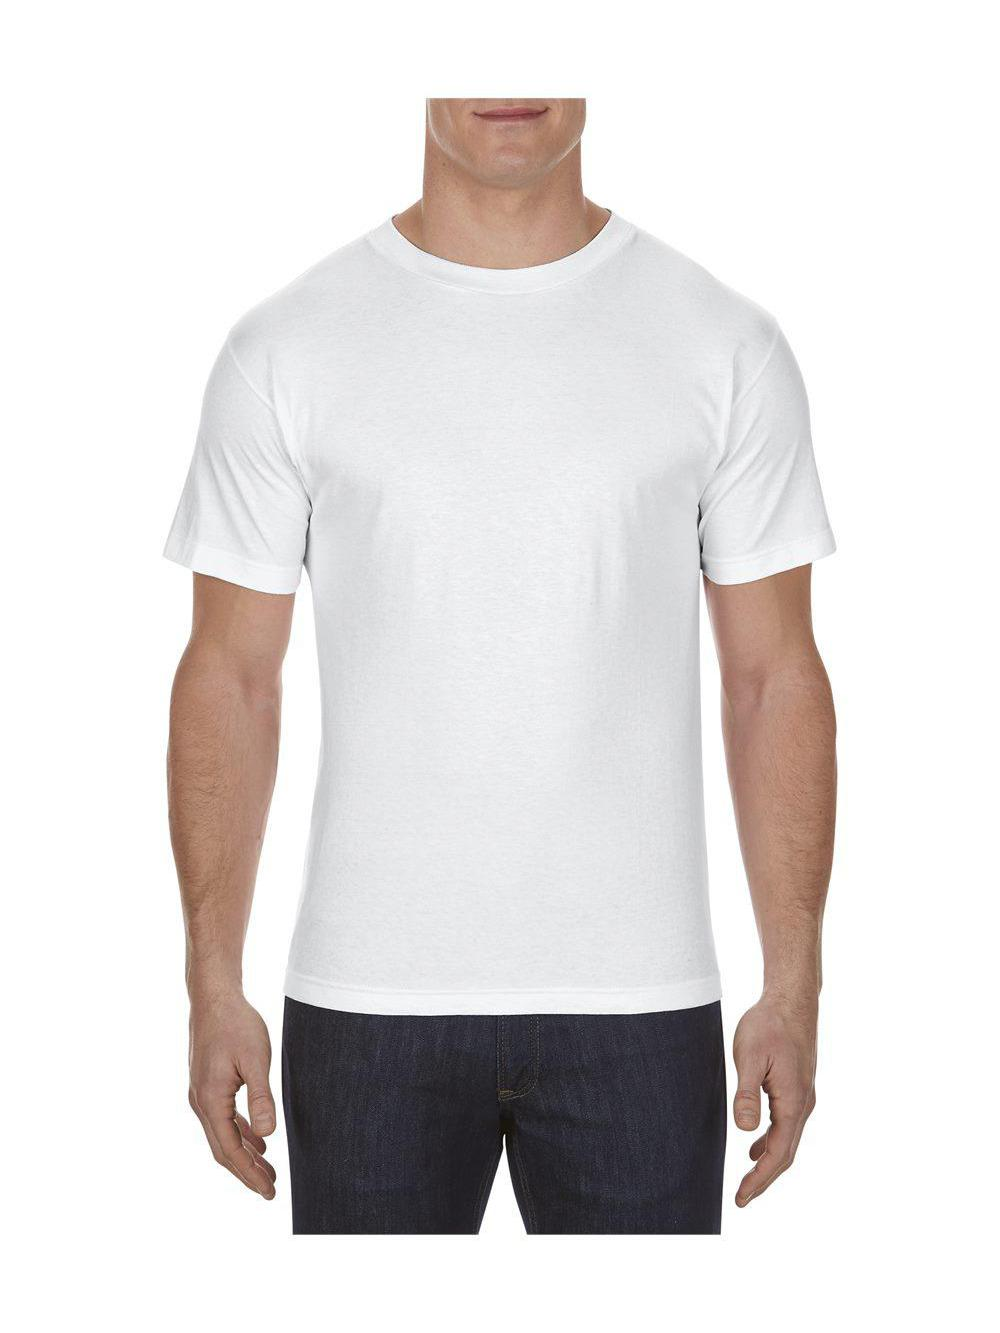 ALSTYLE-Classic-T-Shirt-1301 thumbnail 86